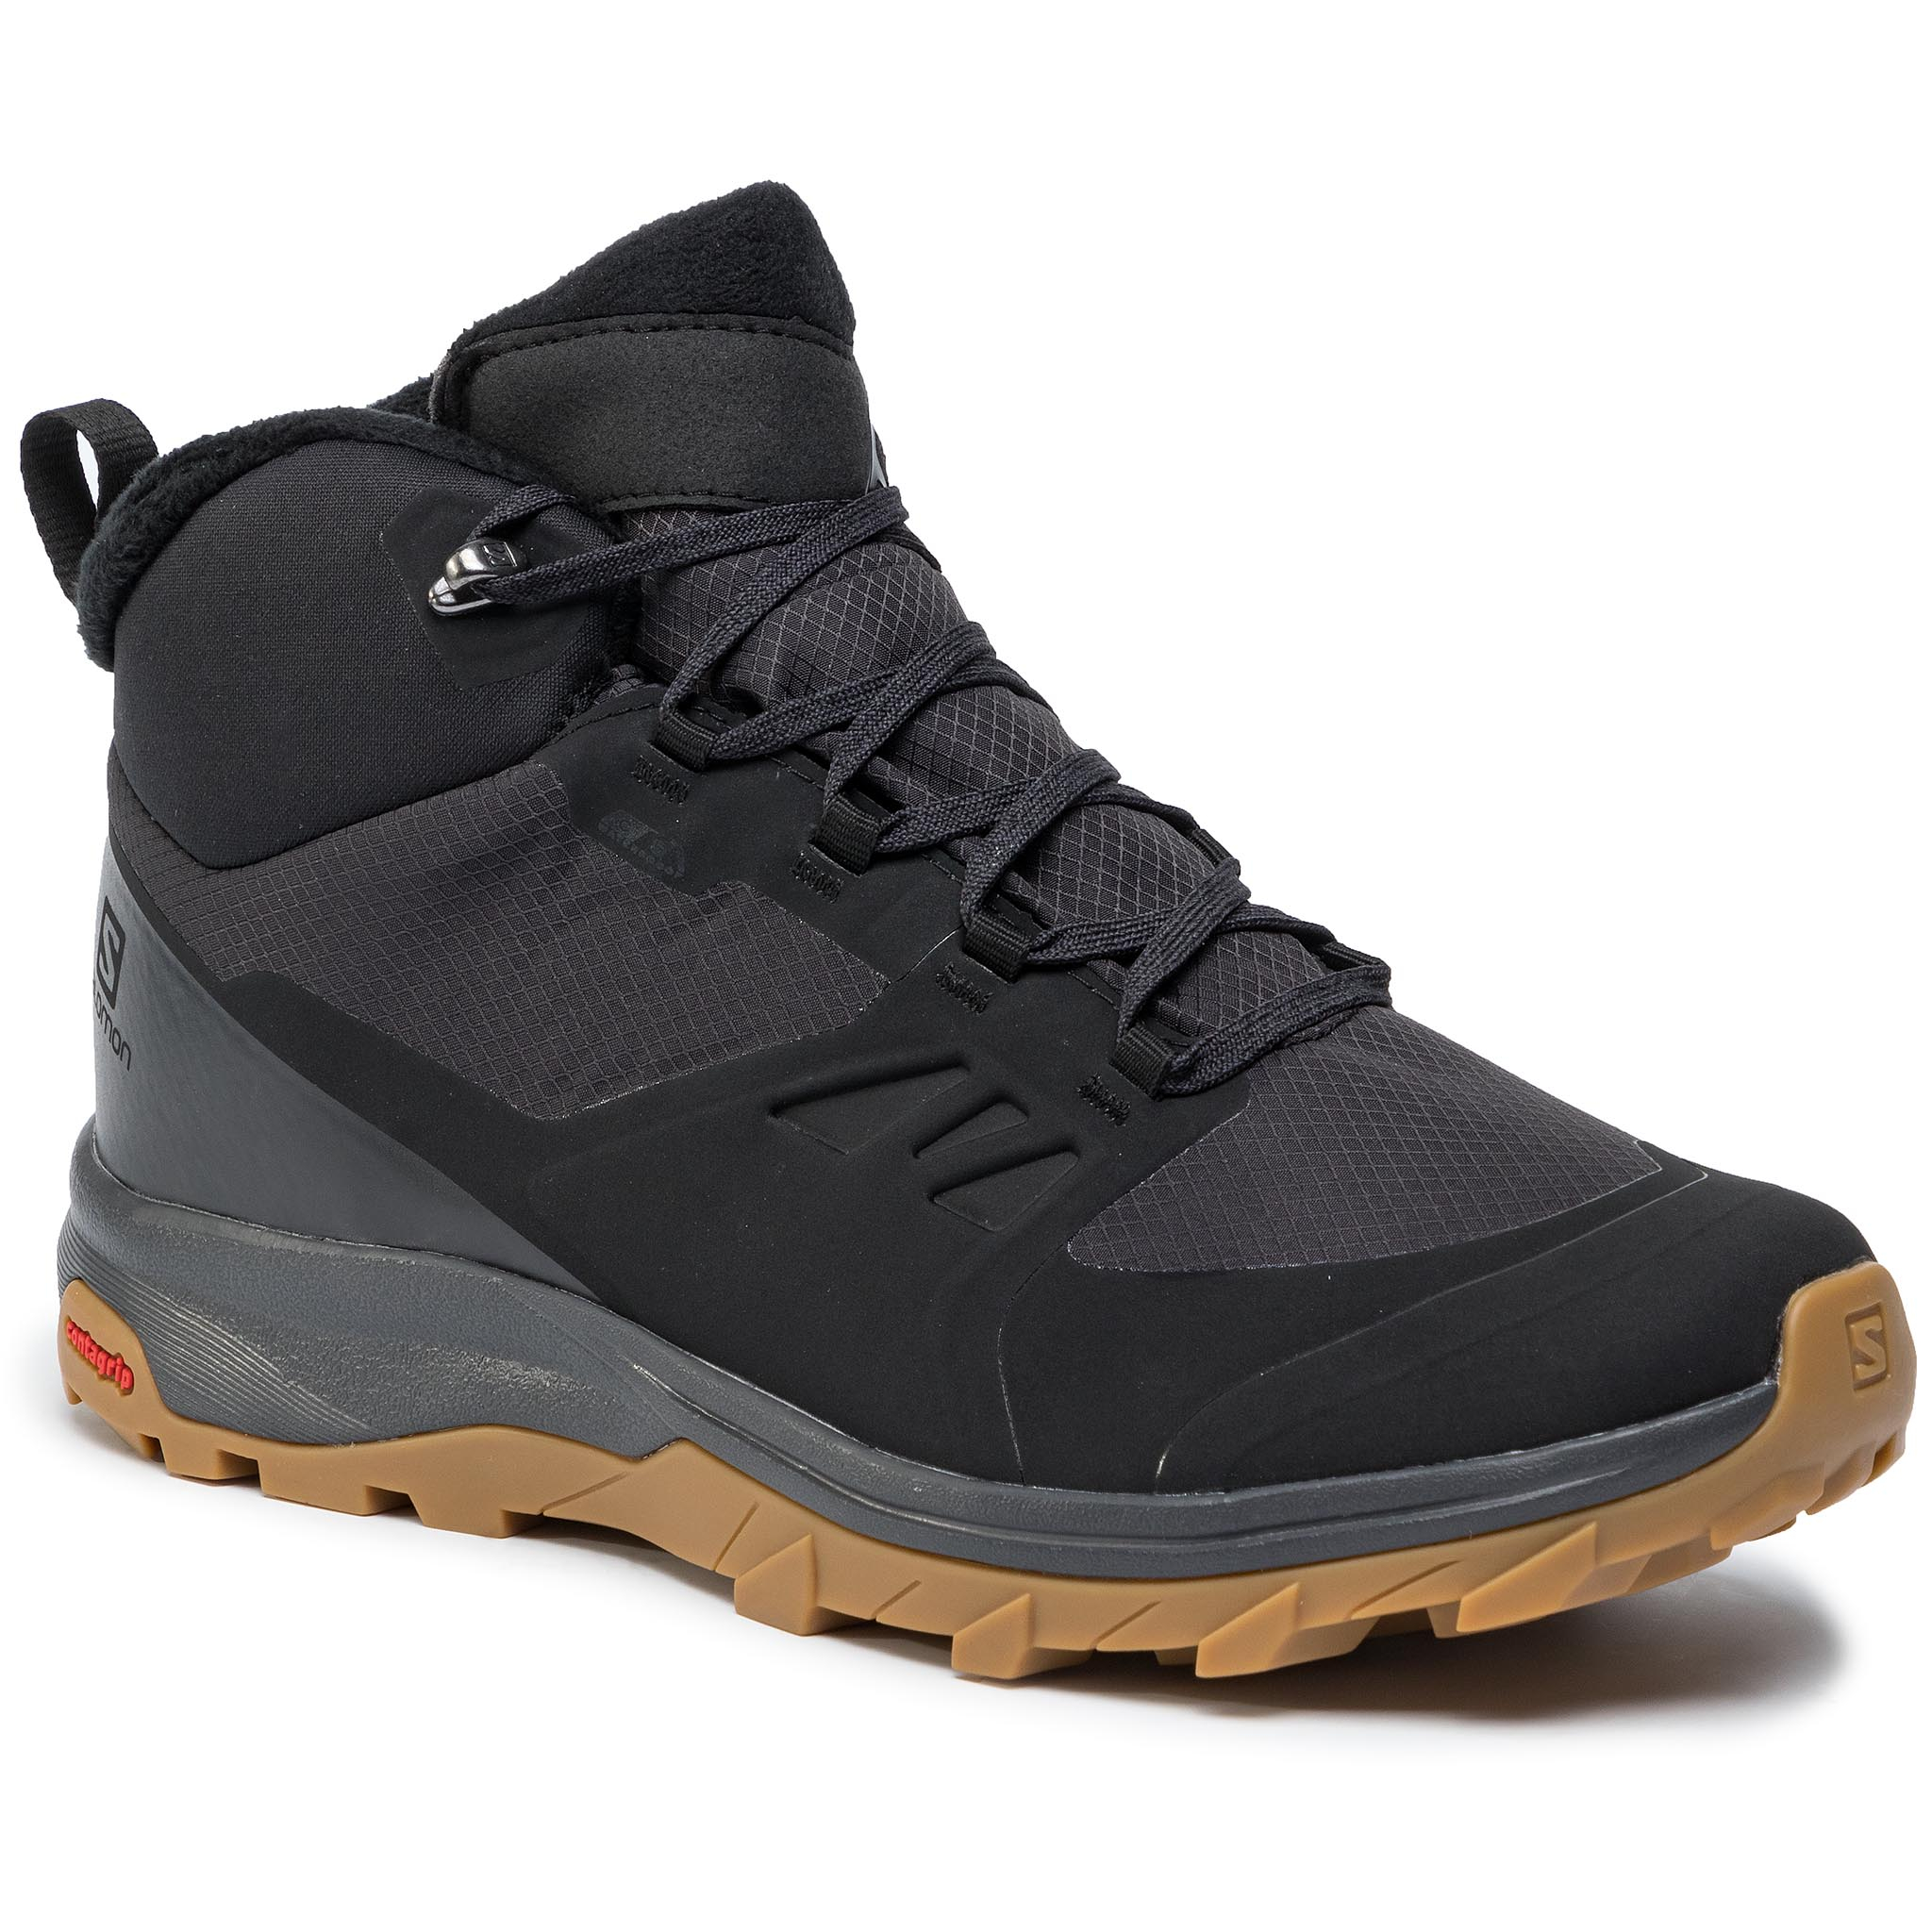 Trekkings Salomon - Outsnap Cswp 409220 28 V0 Black/Ebony/Gum1a imagine epantofi.ro 2021